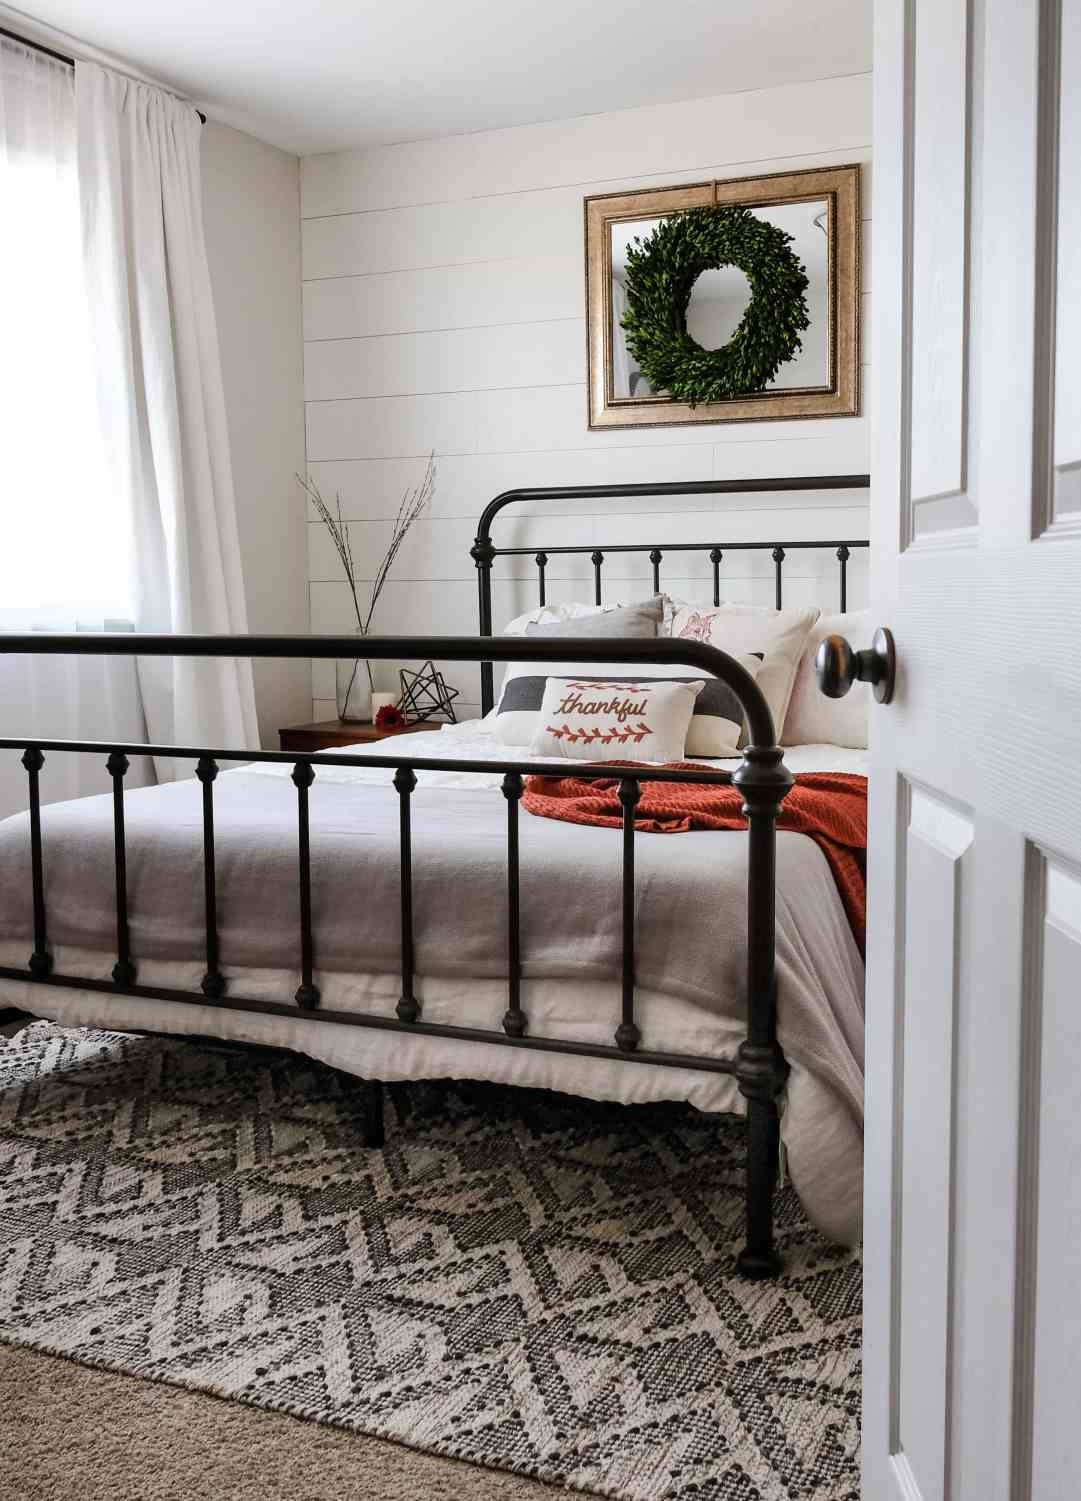 Modern Farmhouse Guest Bedroom - When farmhouse and modern collide to make a warm and welcoming guest bedroom.